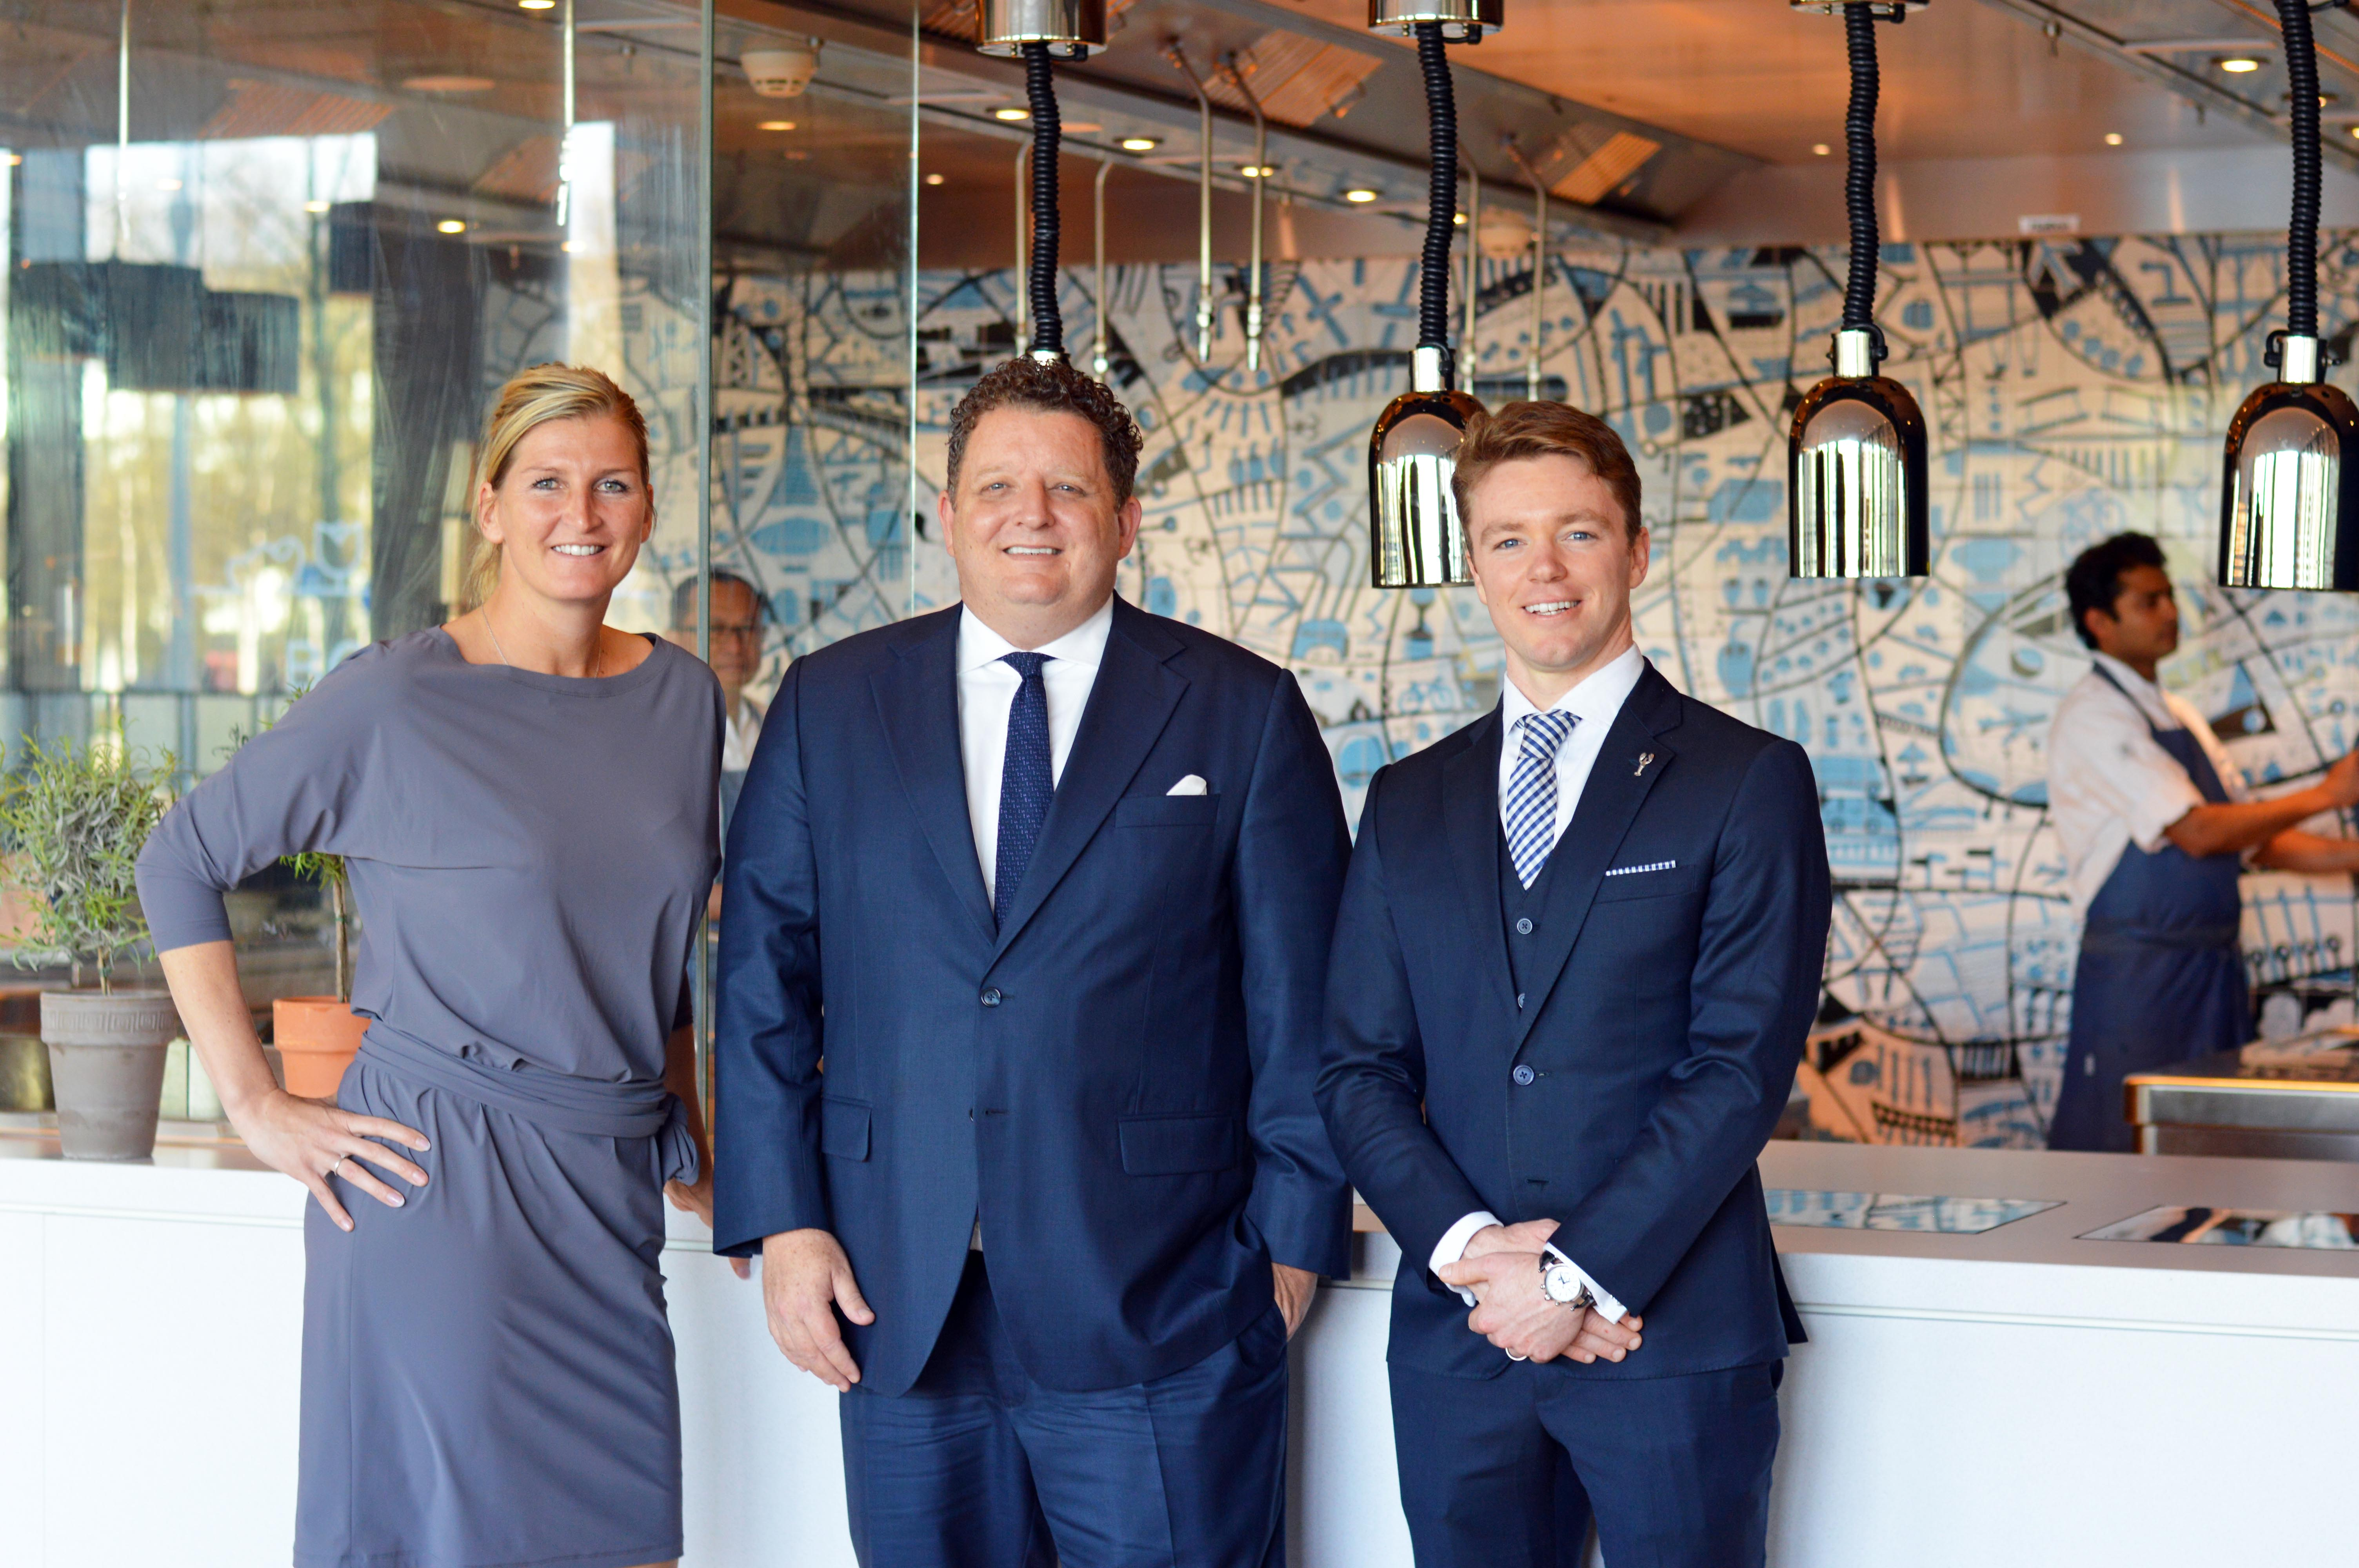 Hotelschool The Hague Hilton Worldwide Today Announced A Partnership With